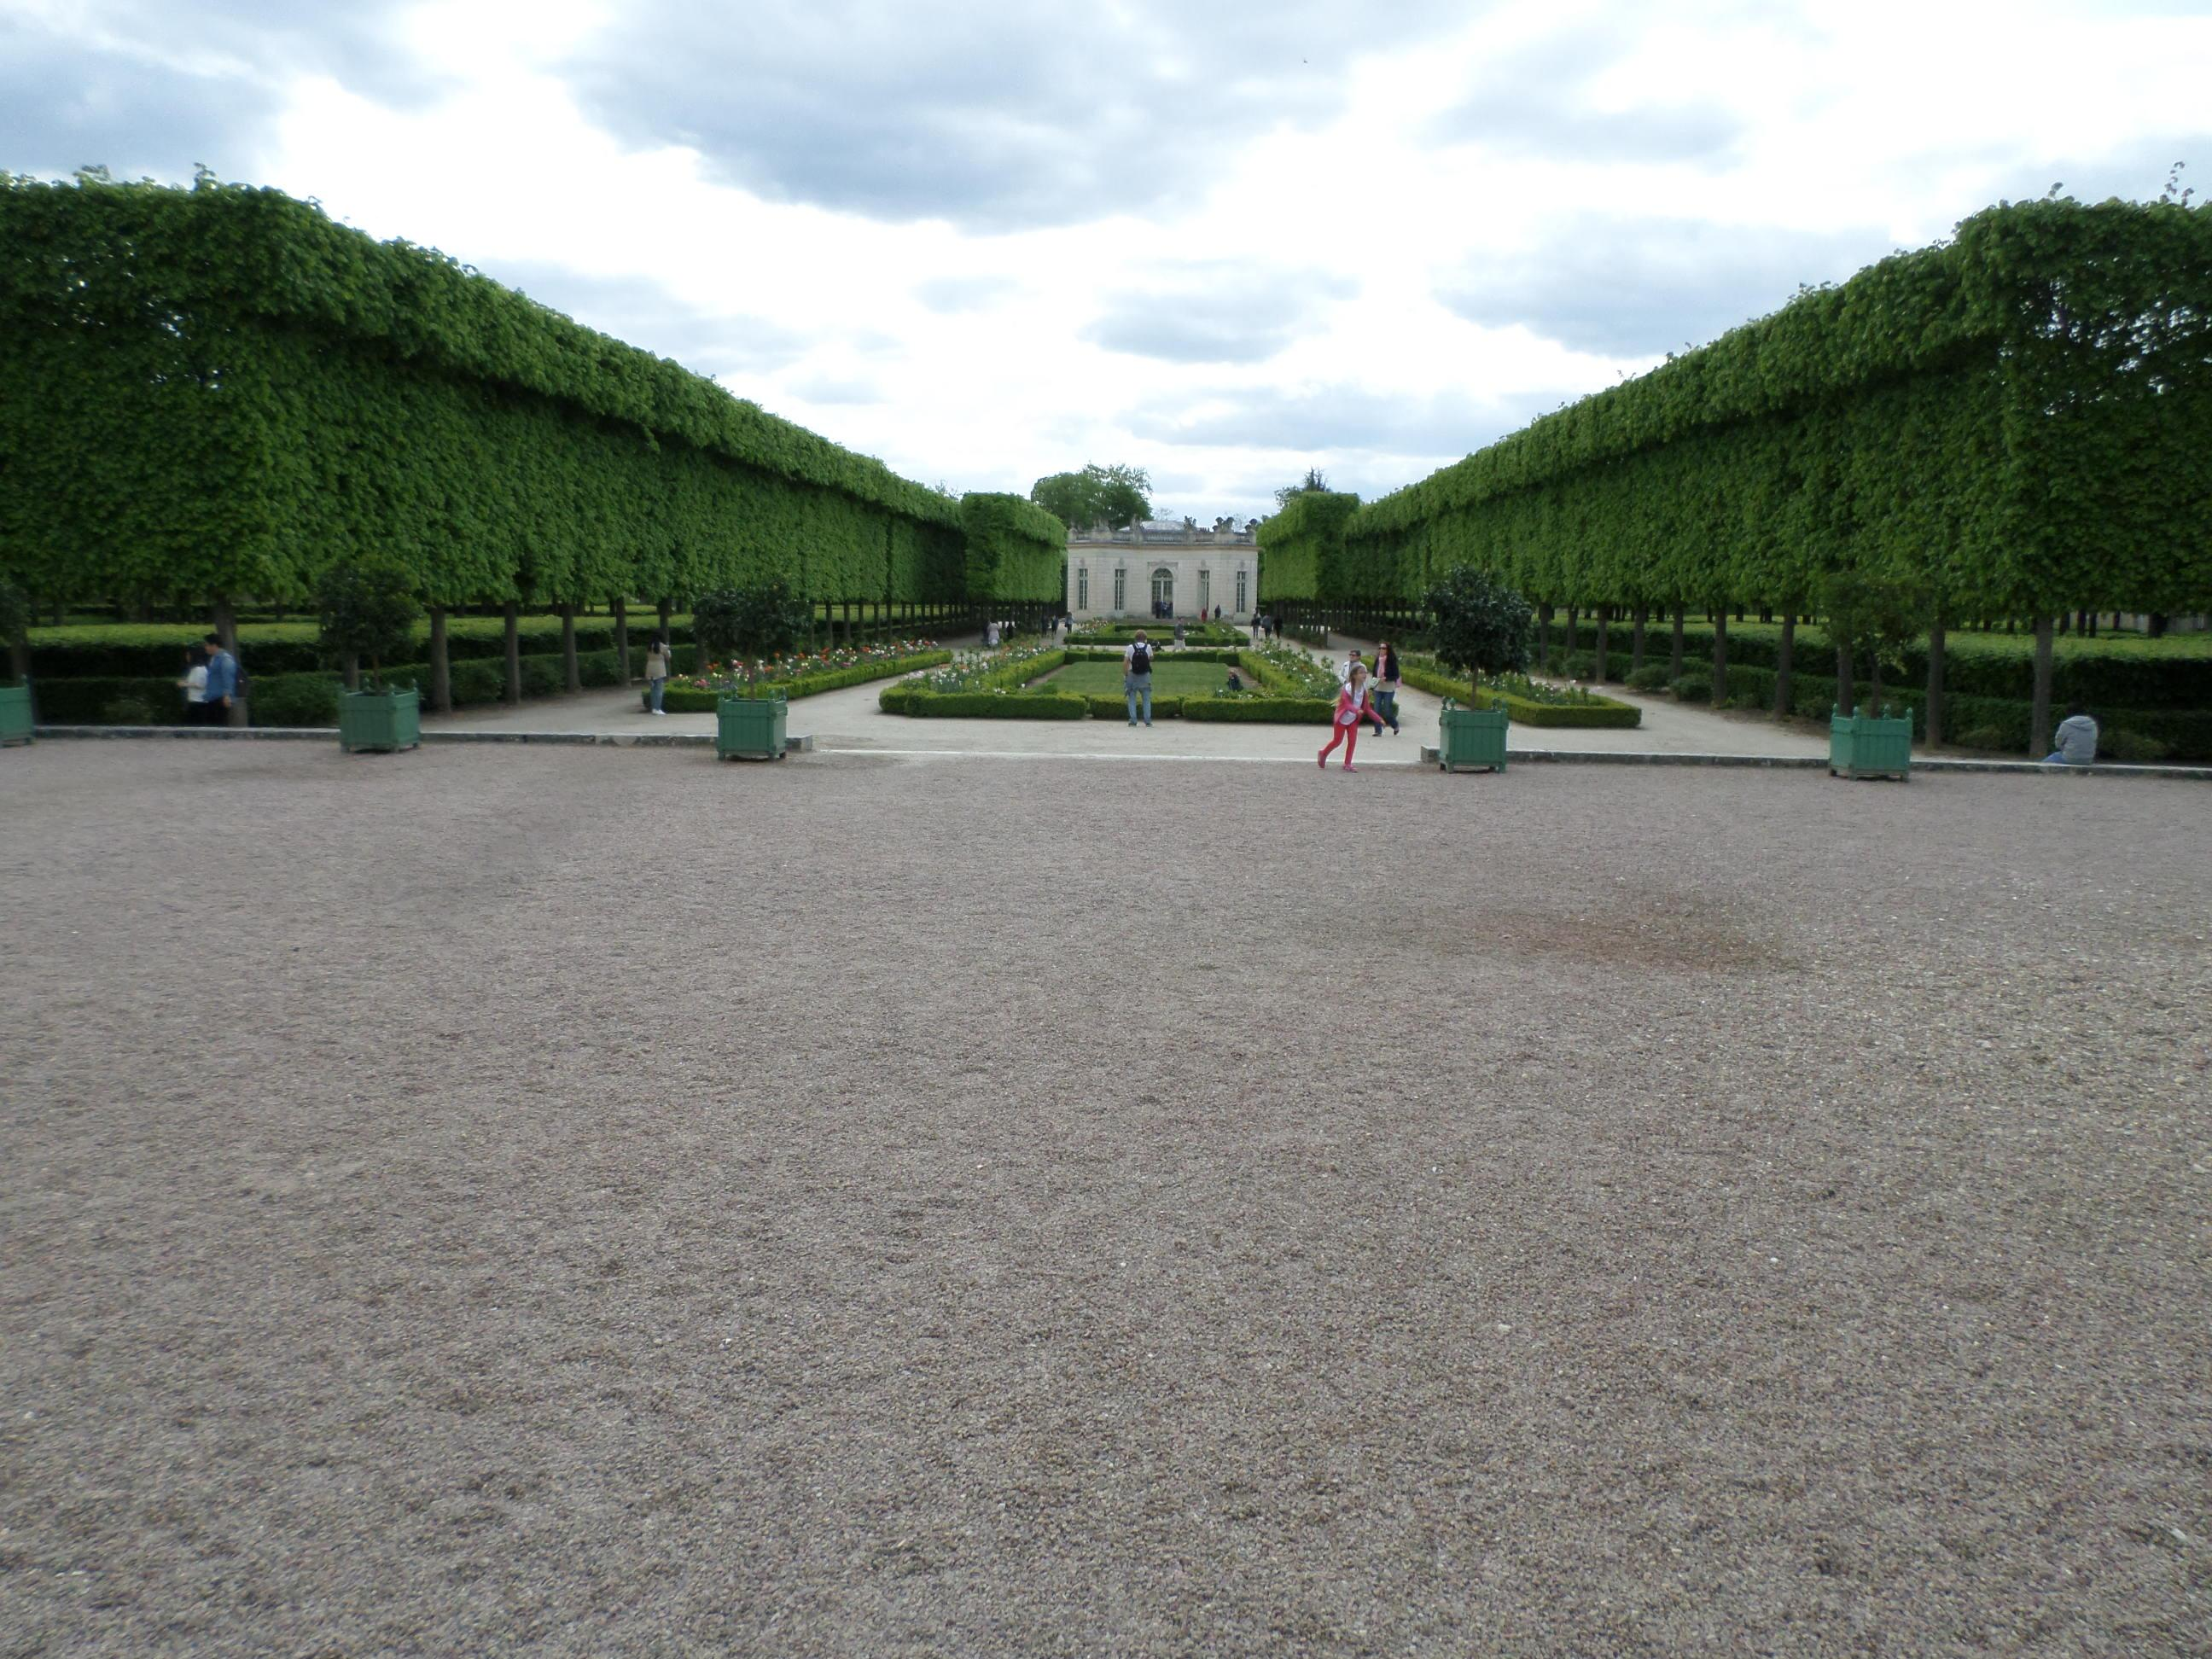 Symmetry and simplicity on display at the Gardens of Versailles.